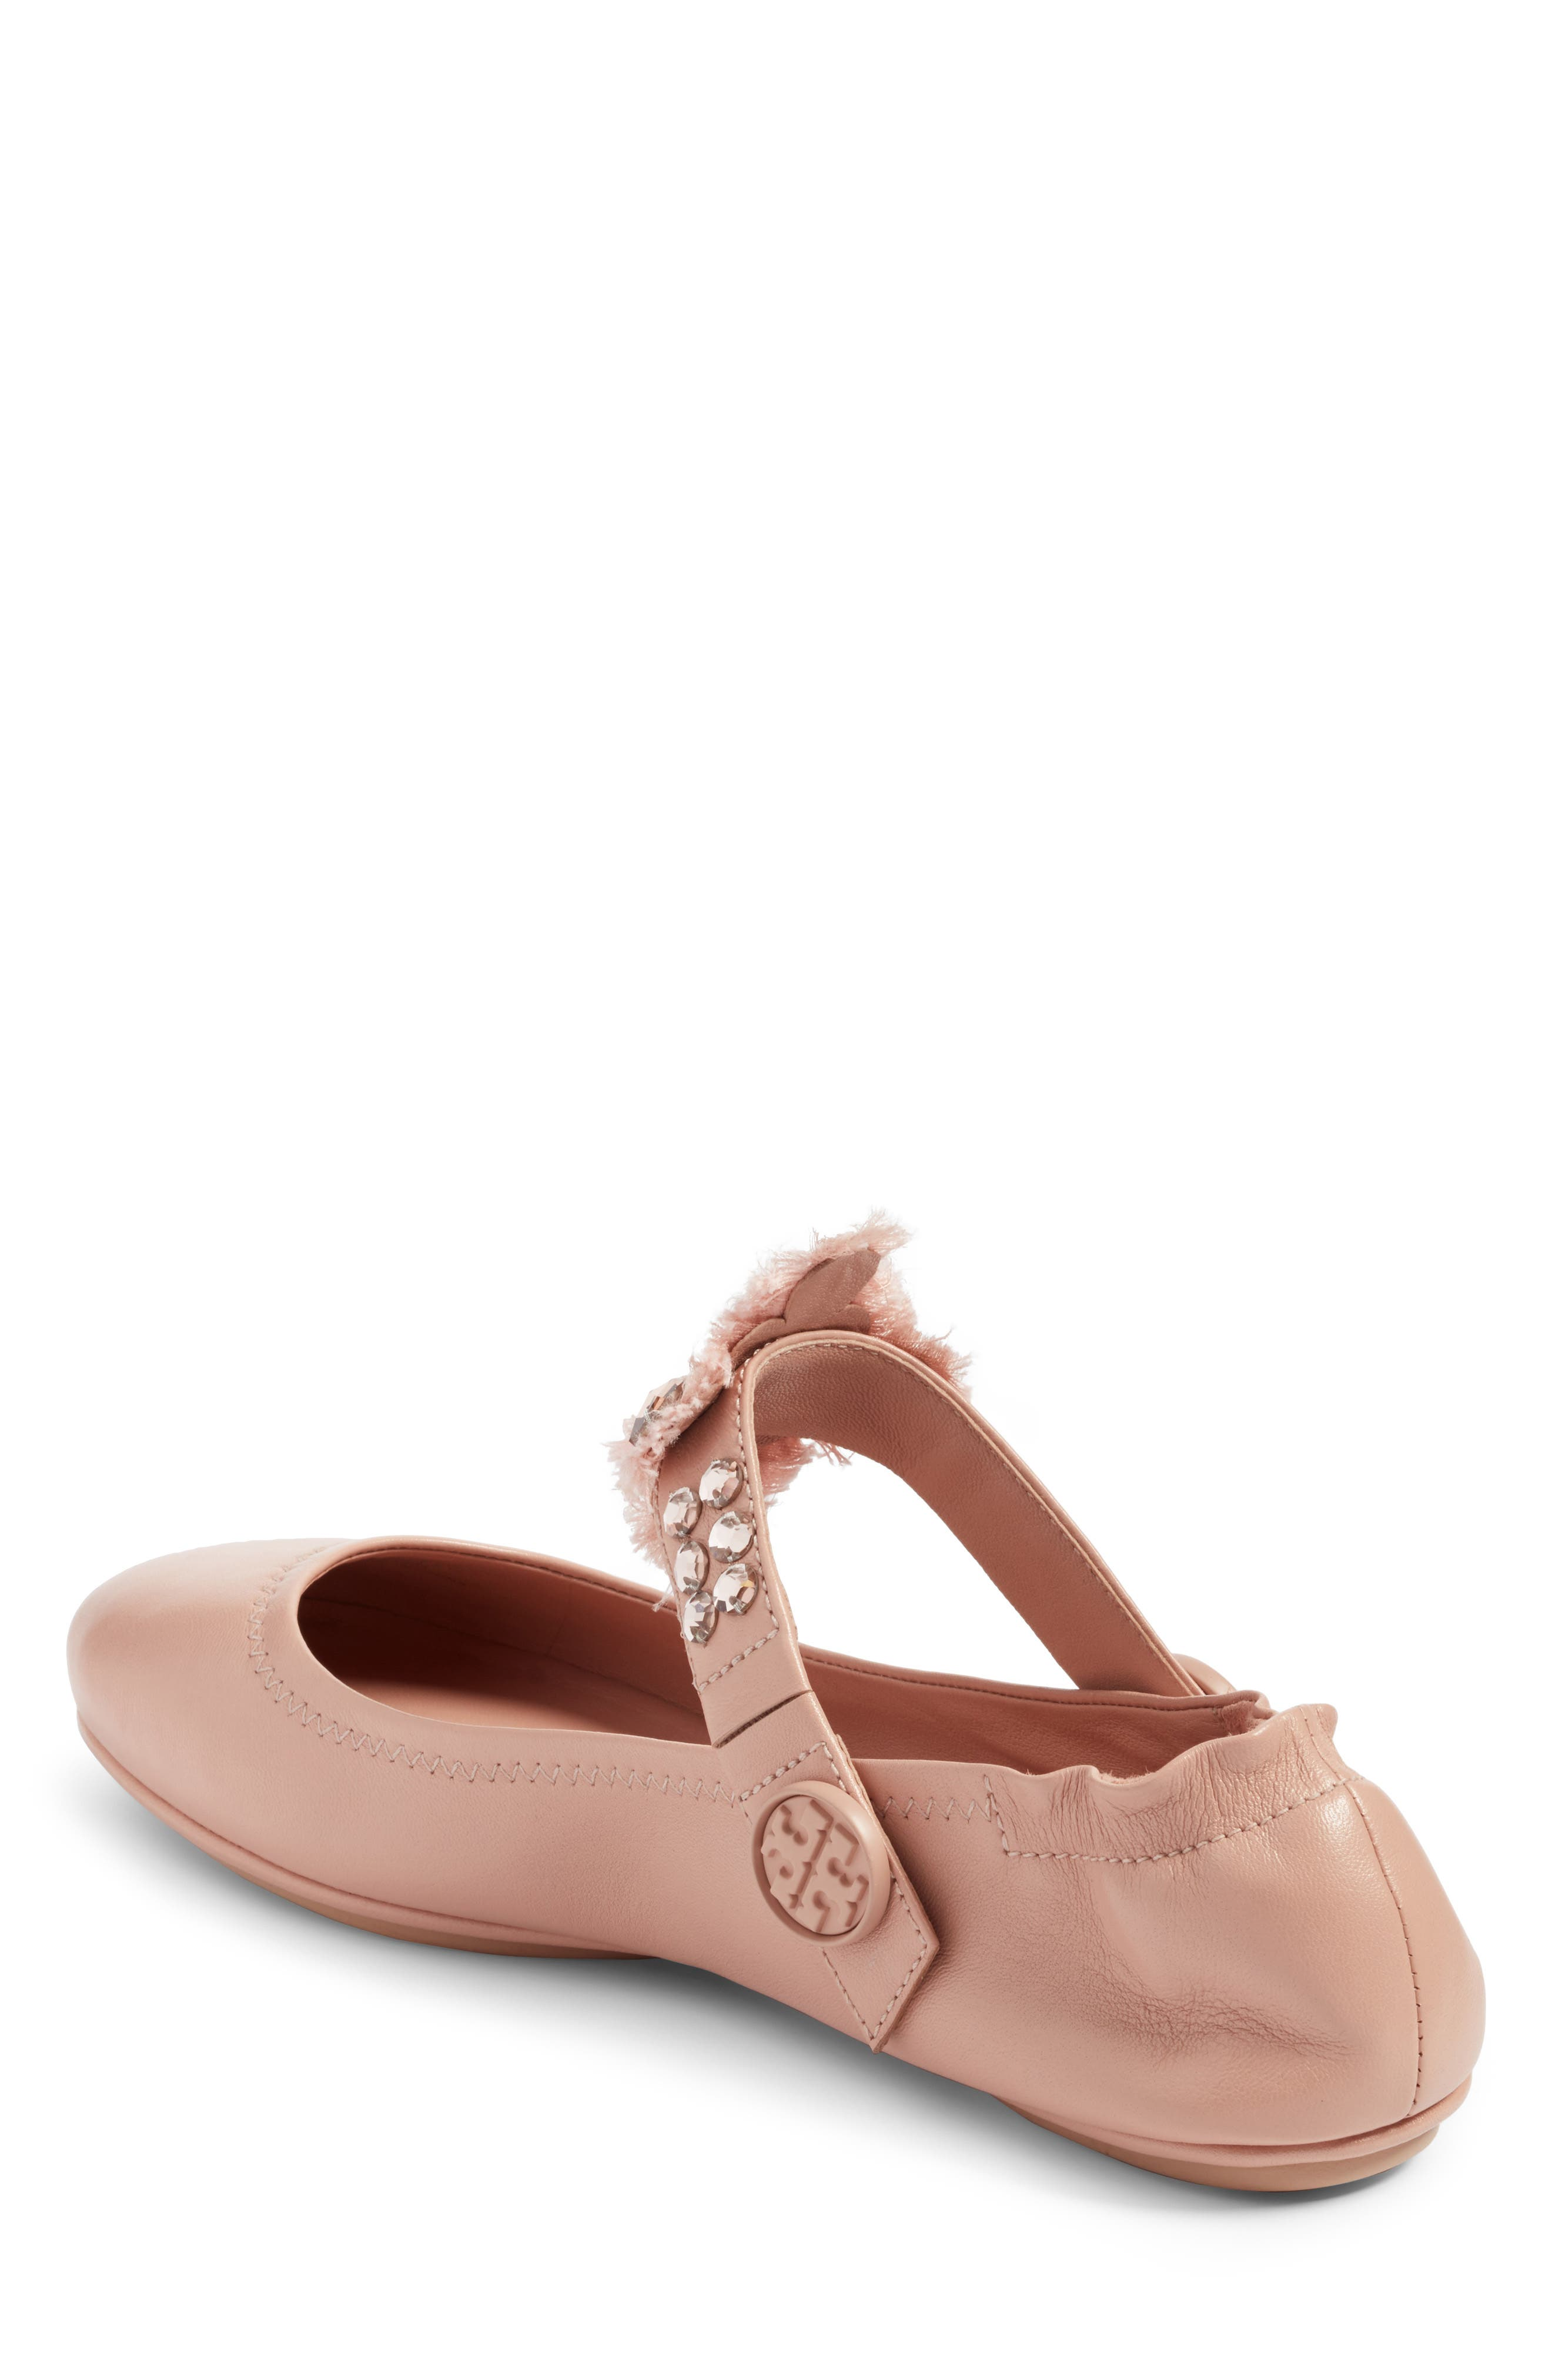 Minnie Embellished Convertible Strap Ballet Flat,                             Alternate thumbnail 9, color,